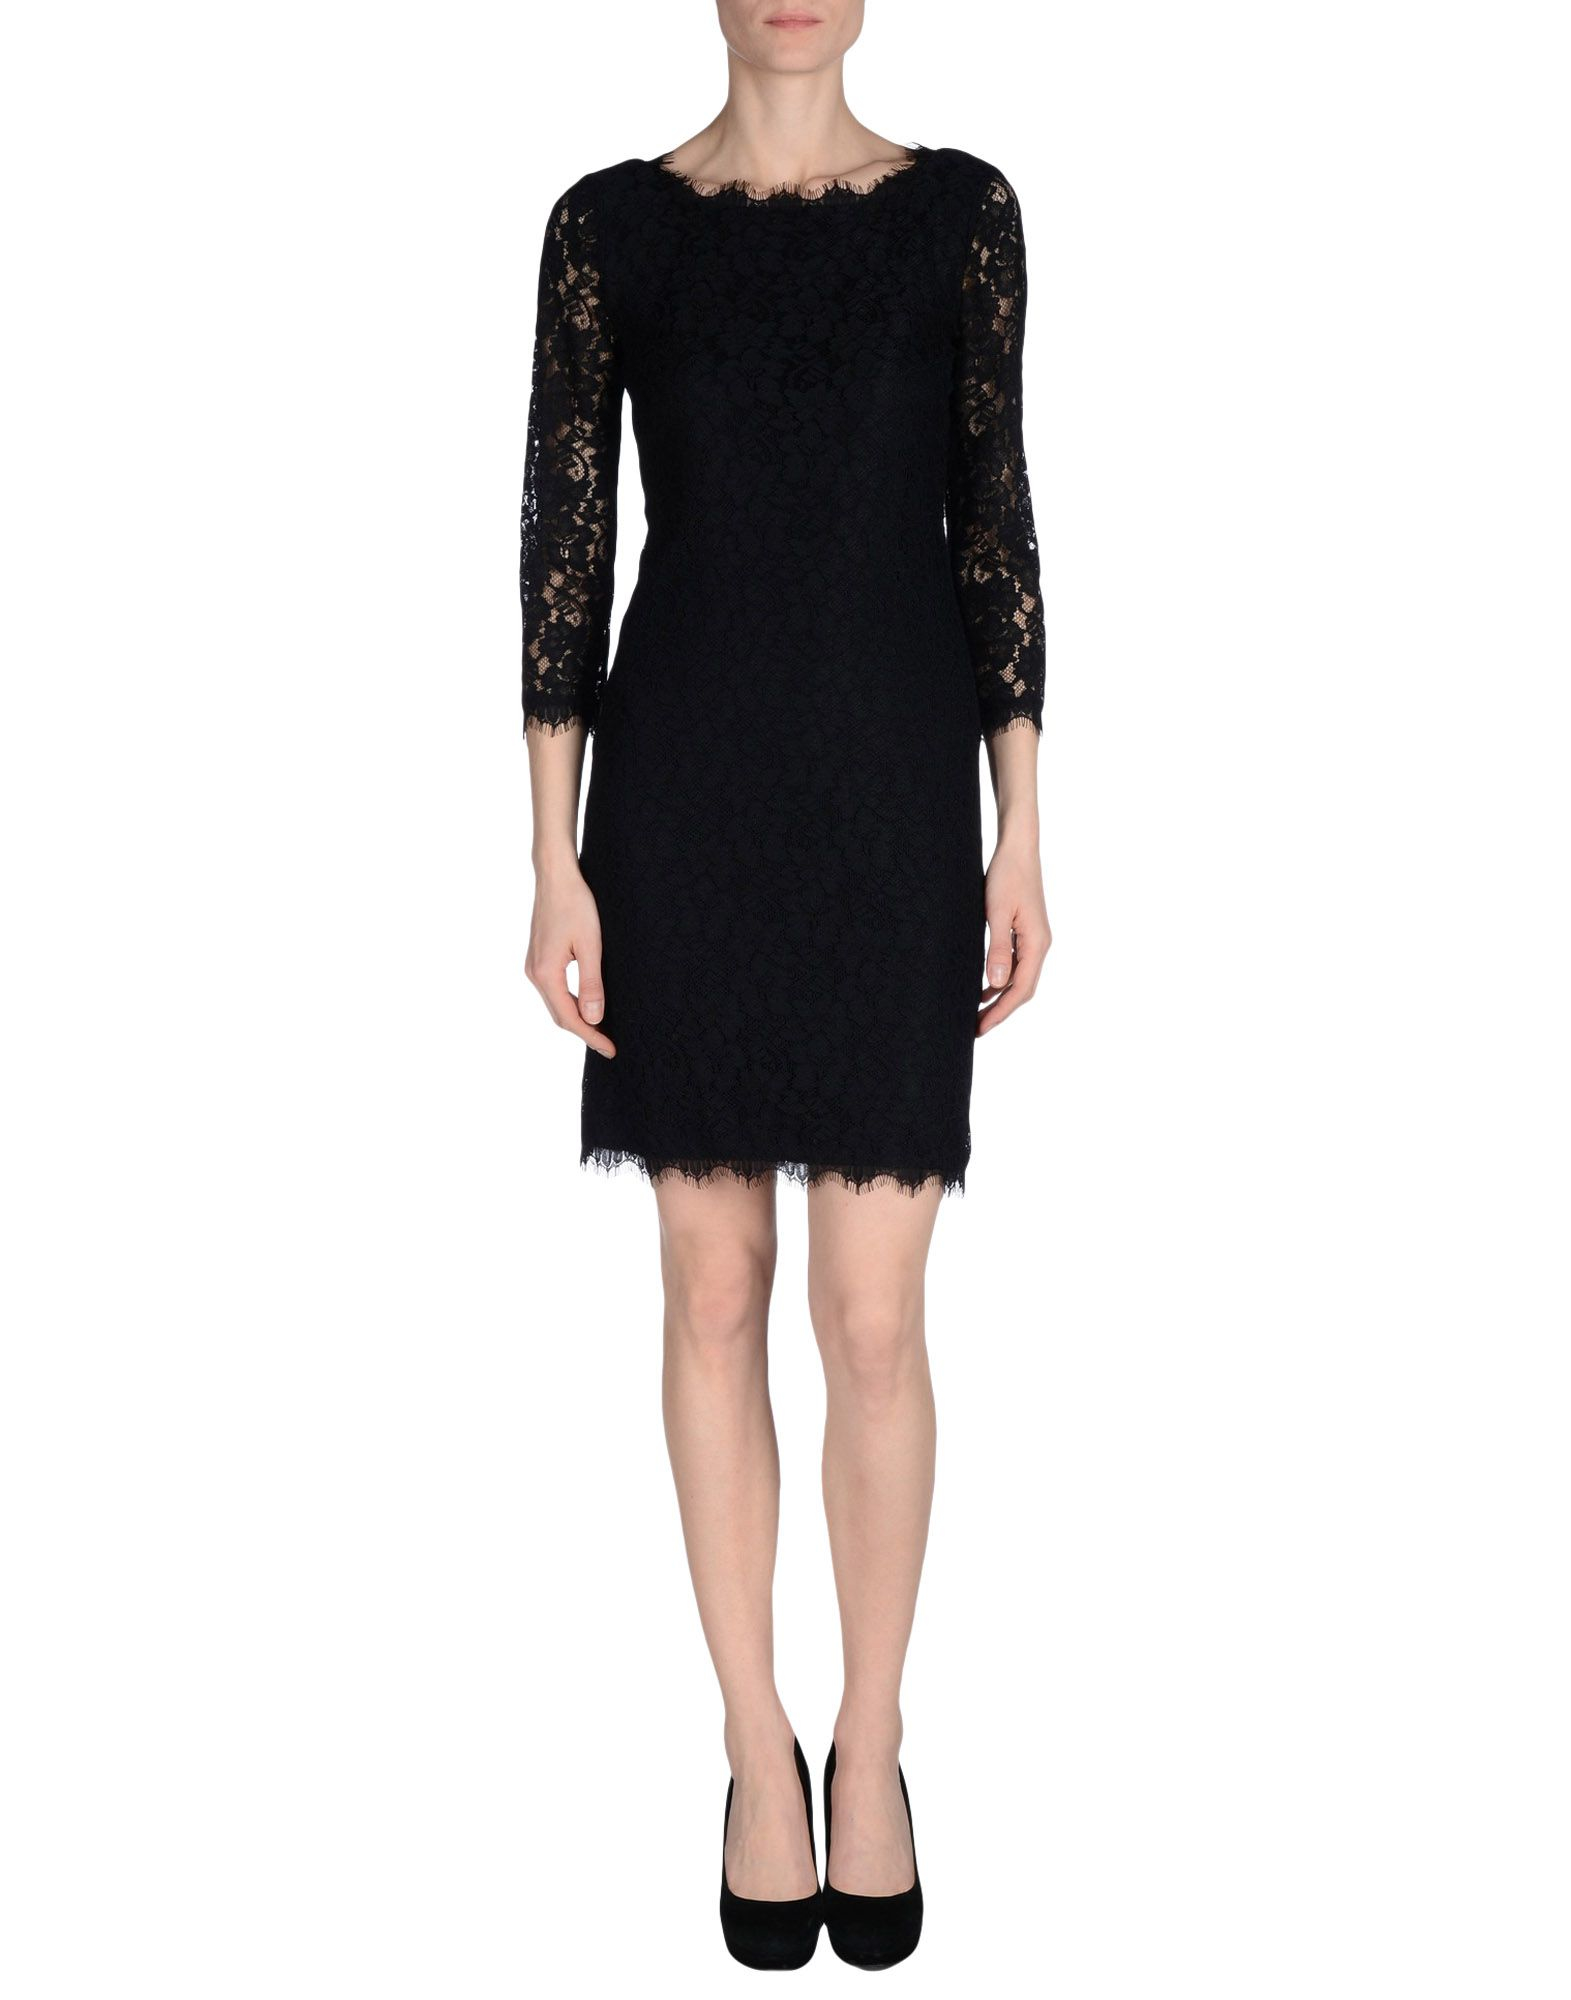 Diane von furstenberg short dress in black lyst for Diane von furstenberg clothes